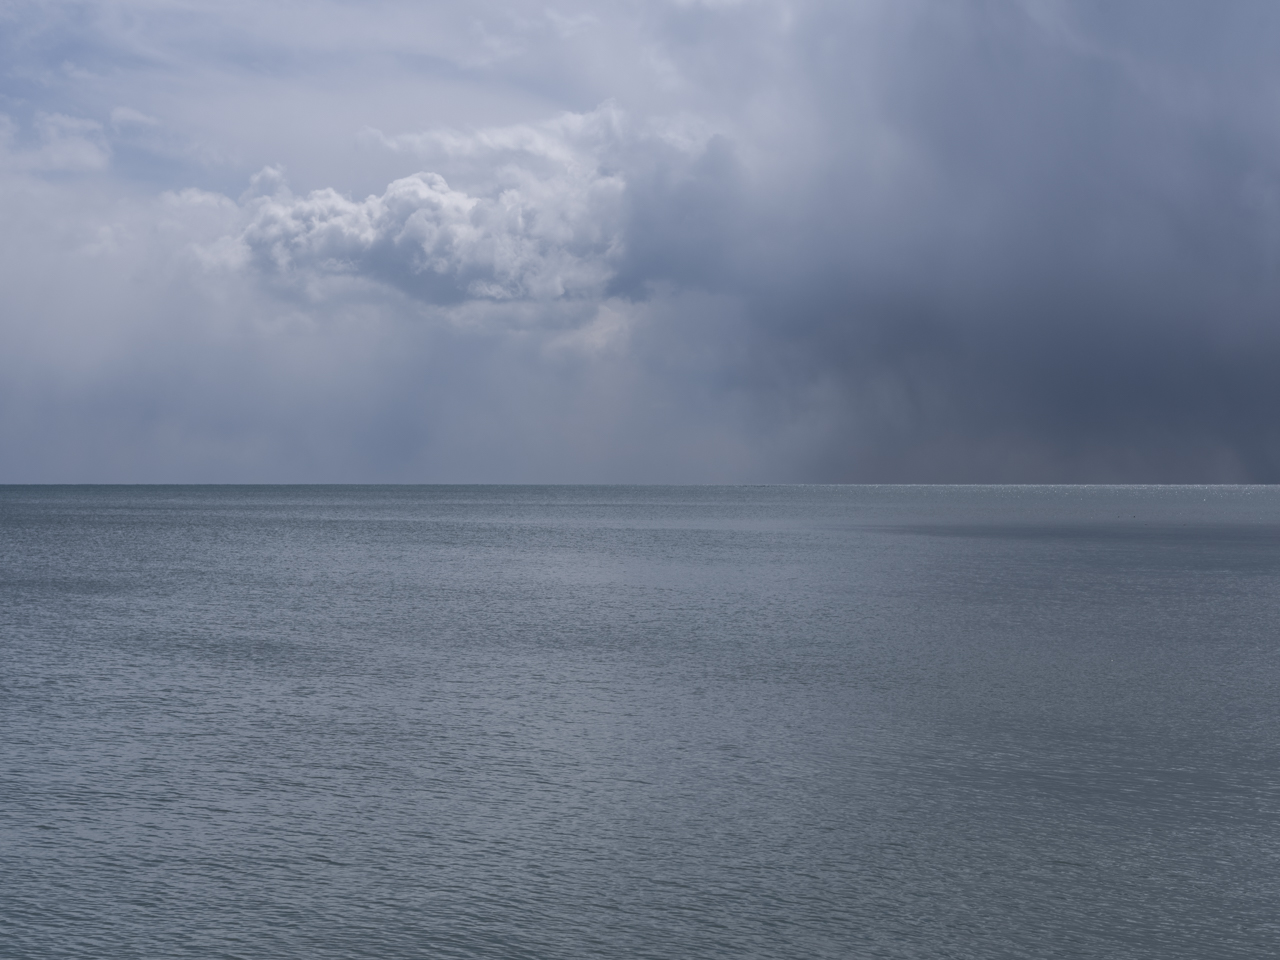 Clouds fill the sky as heavy darkness occludes the sky over a gray green Lake Michigan